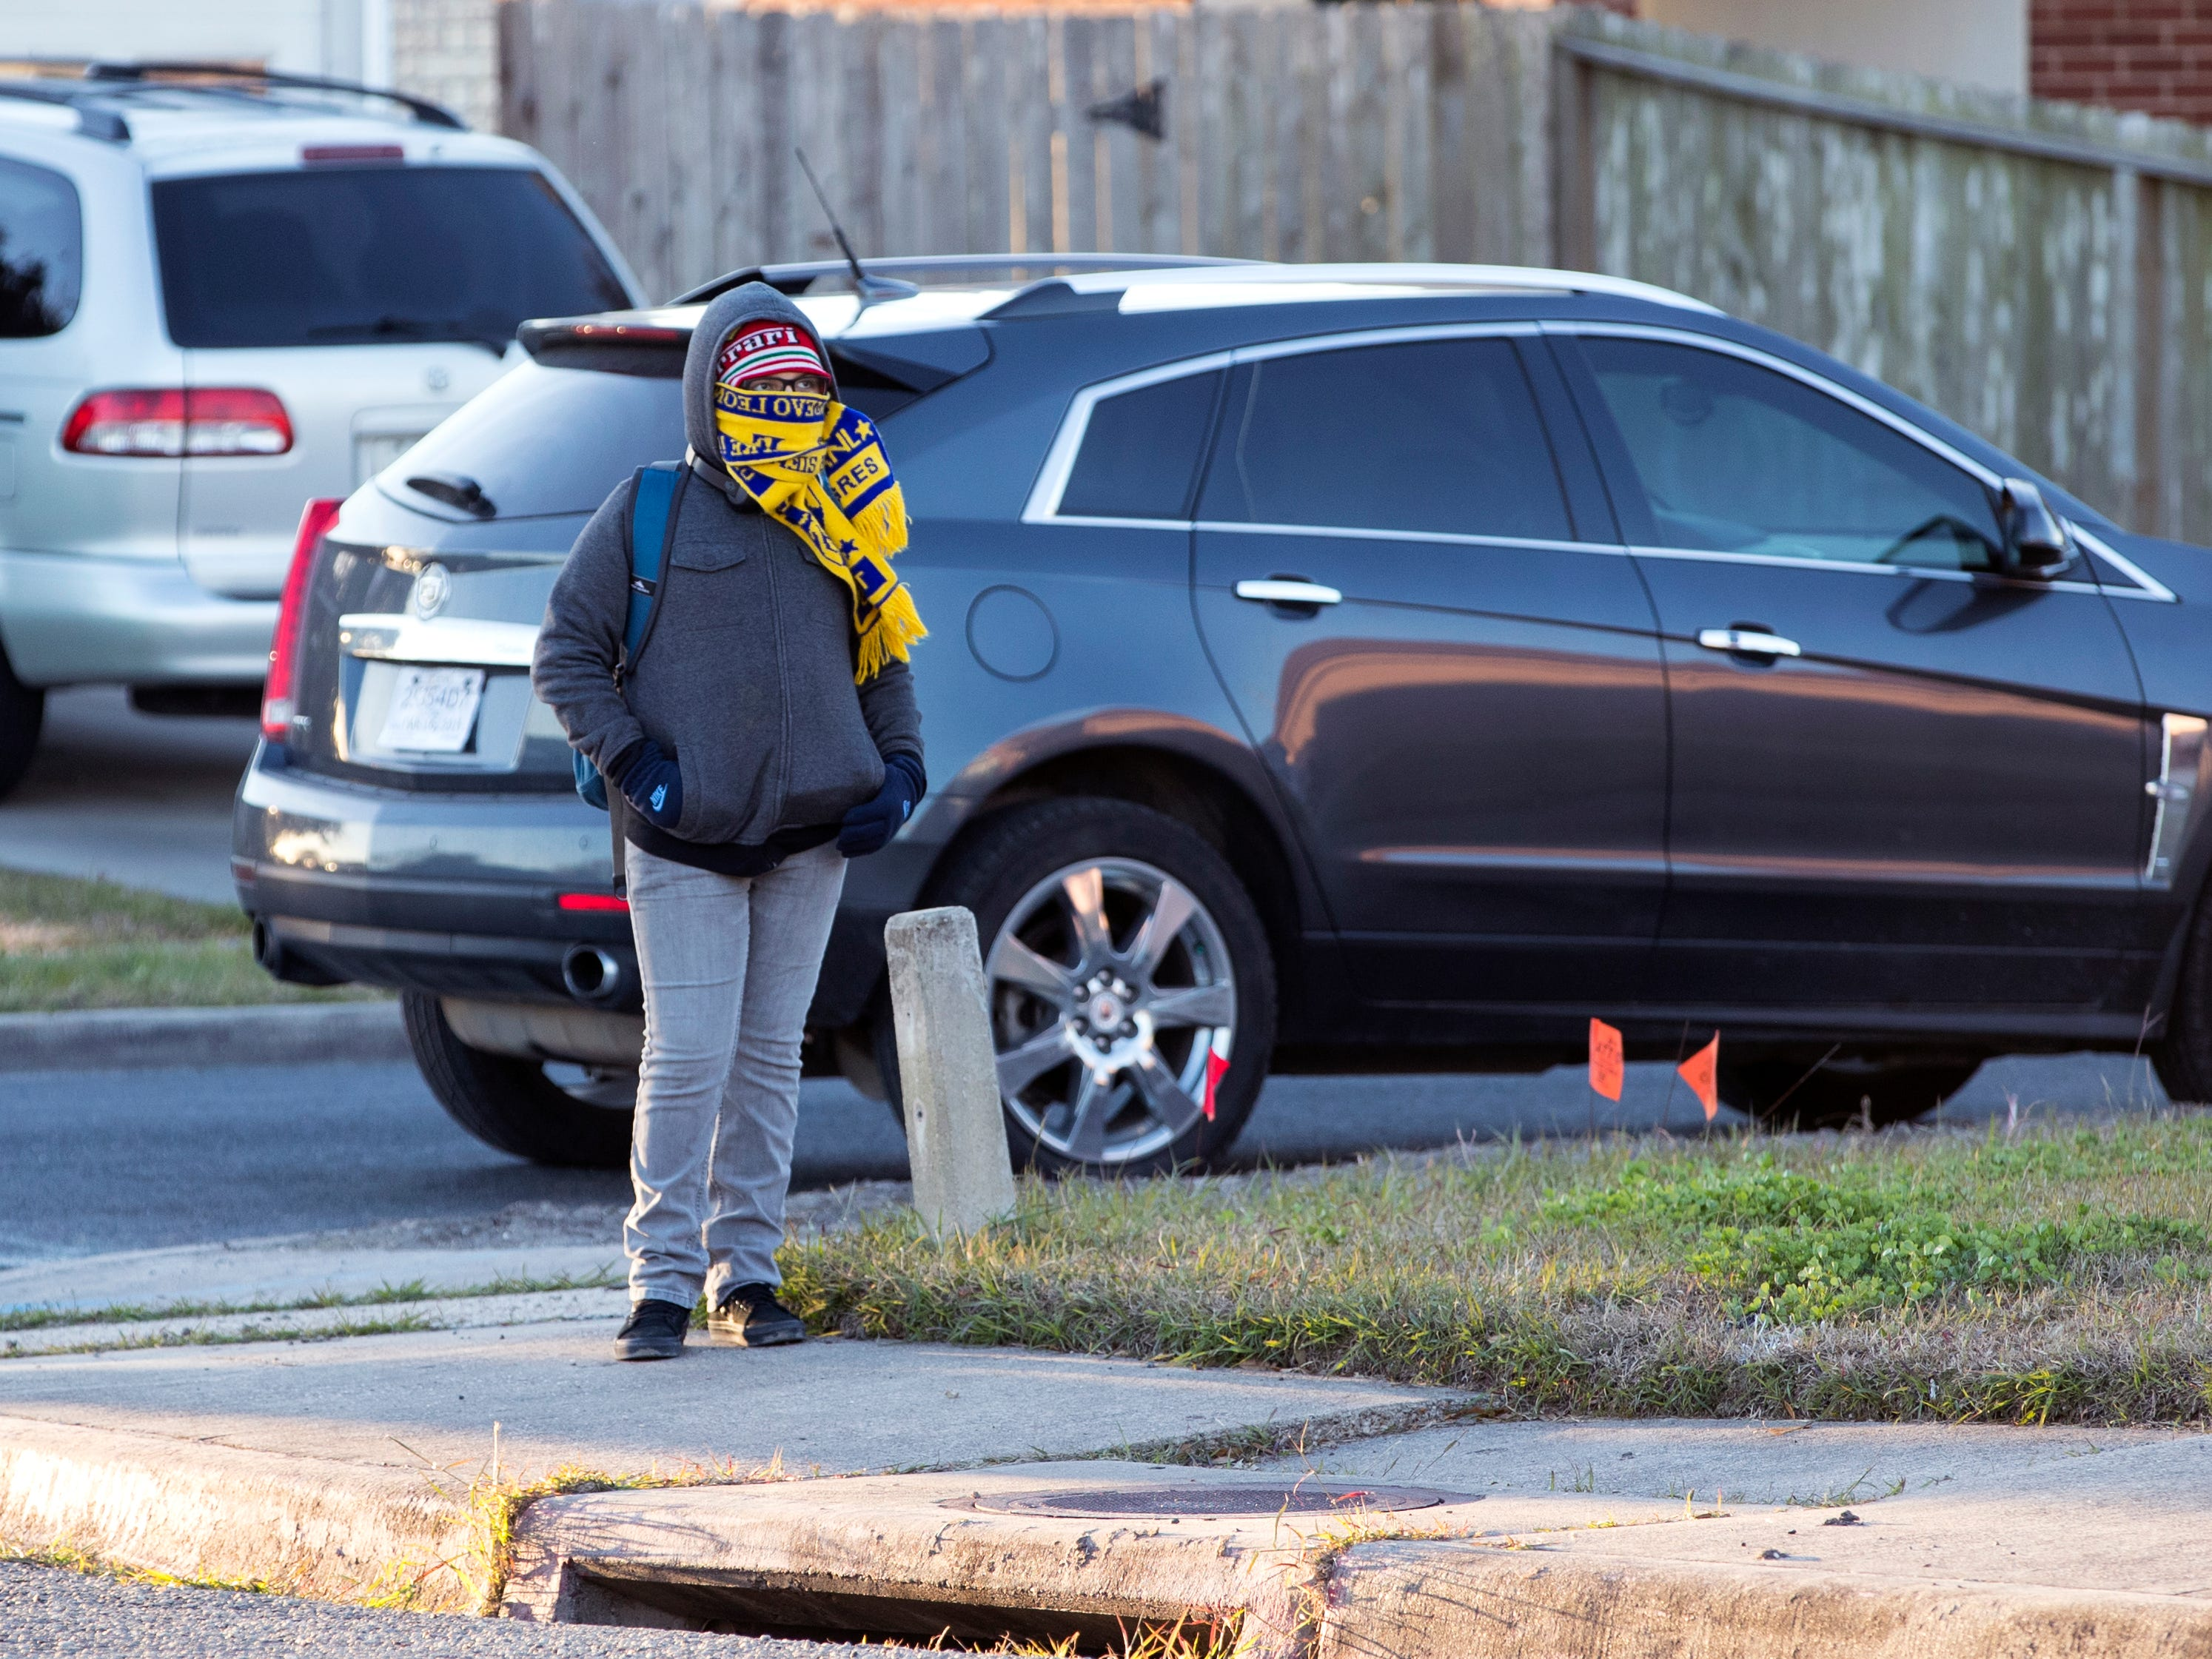 A student waits for a bus outside Mireles Elementary School on Tuesday, January 29, 2019. An arctic cold front is moving into the Coastal Bend and into the Gulf waters, according to a forecast from the National Weather Service in Corpus Christi. Lows will dip to the 40s with wind gusts as high as 39 mph.